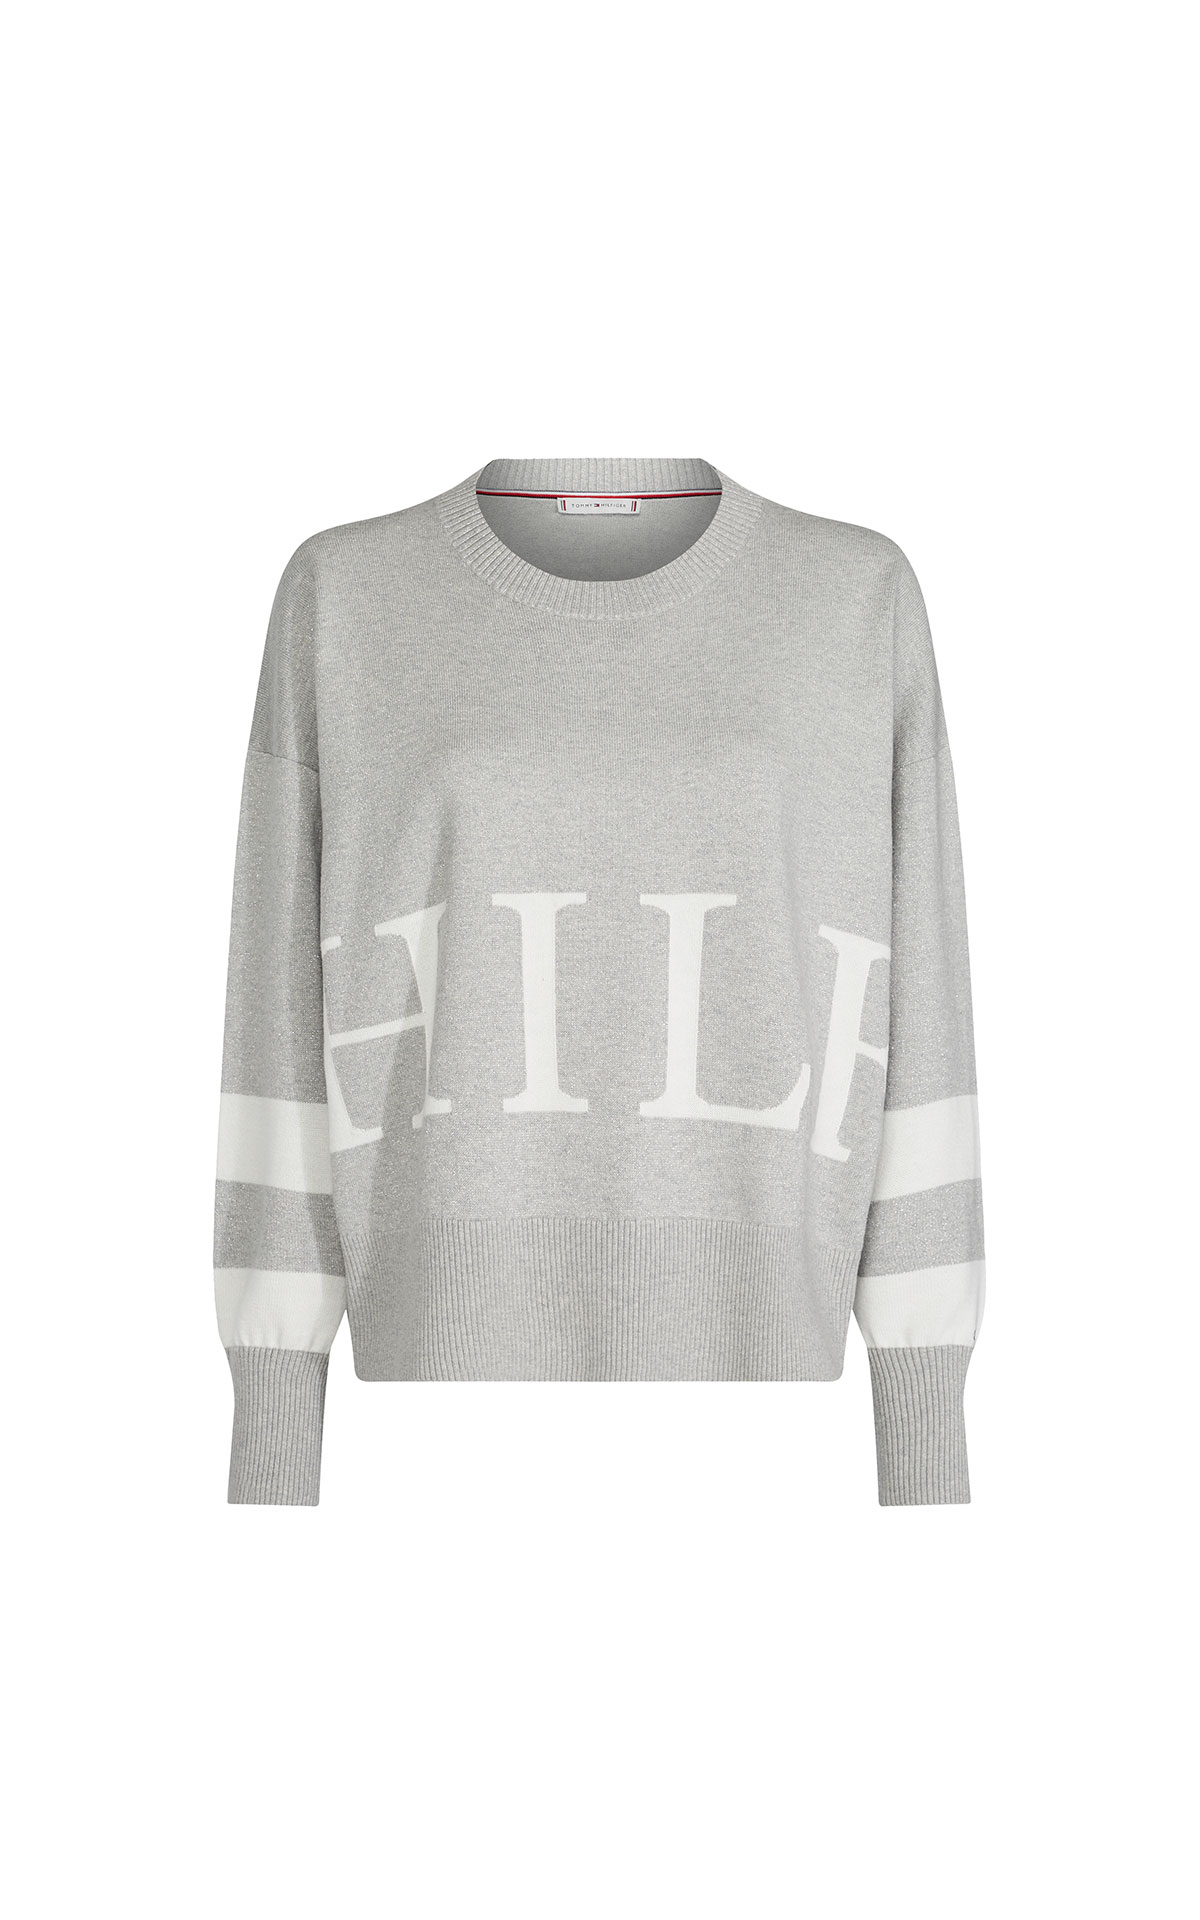 Tommy Hilfiger Women's marcey sweater at The Bicester Village Shopping Collection